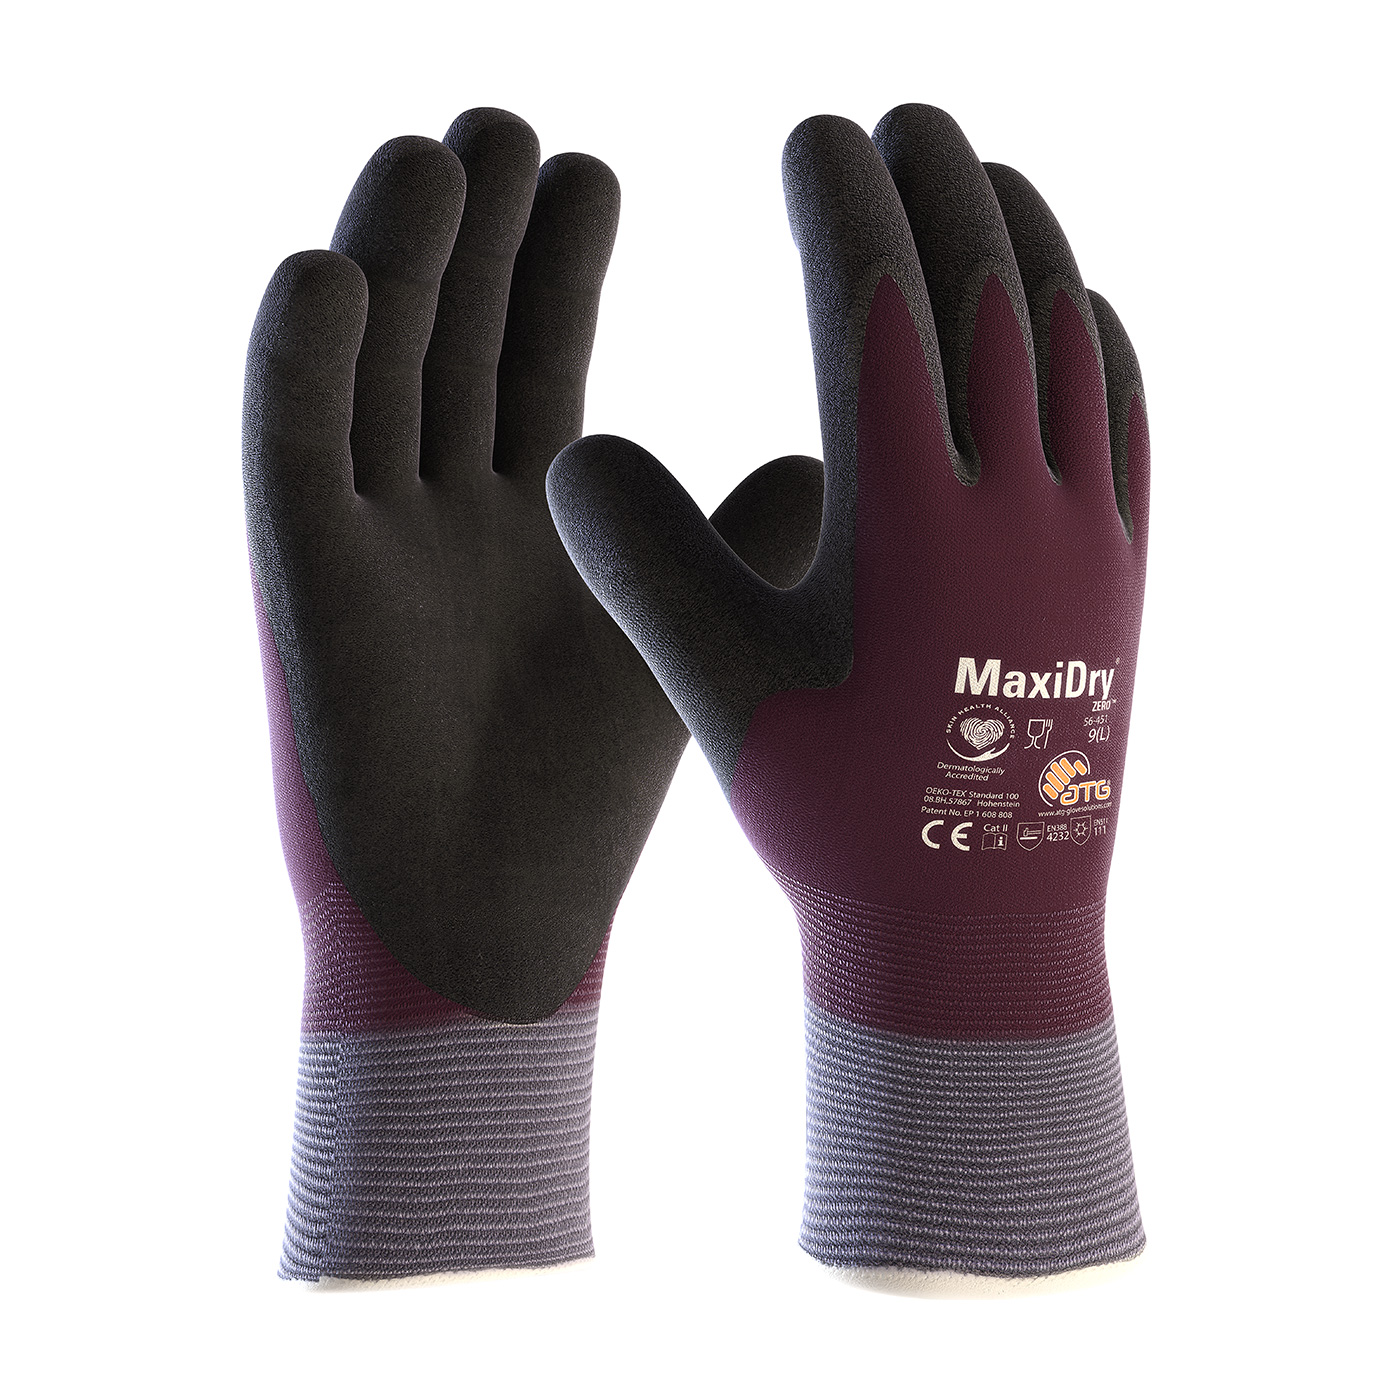 #56-451 PIP® MaxiDry® Zero™ Seamless Knit Nylon/Lycra Glove with Thermal Lining and Double-Dipped Nitrile Coated MicroFoam Grip on Full Hand